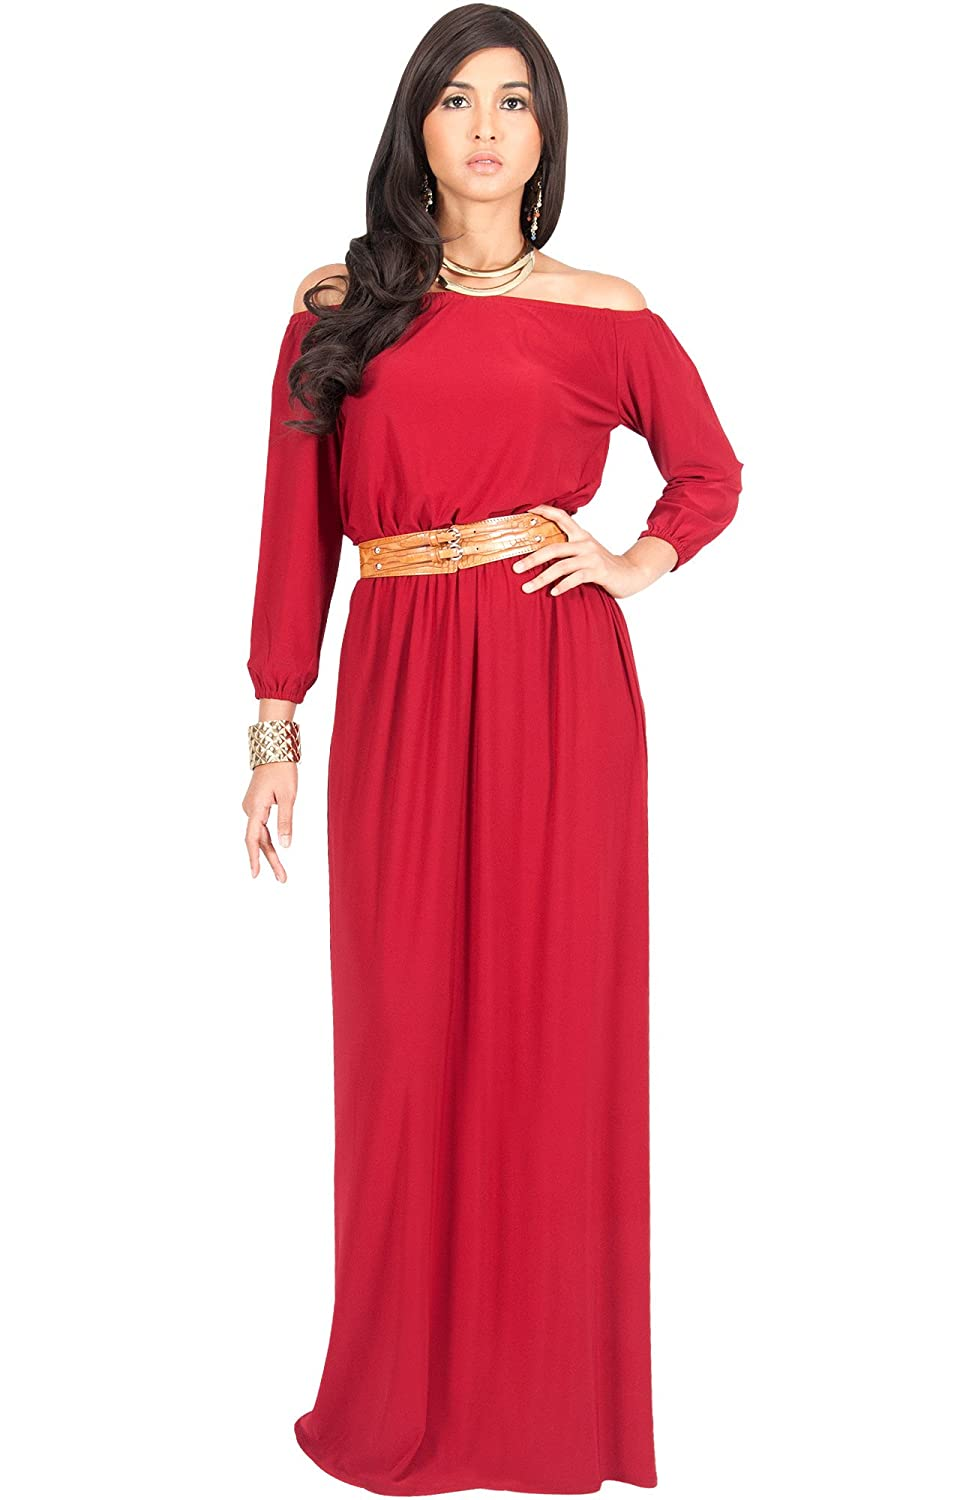 4eaa84126c7 GARMENT CARE - Hand or machine washable. Can be dry-cleaned if desired. PLUS  SIZE - This great maxi dress design is also available in plus sizes.